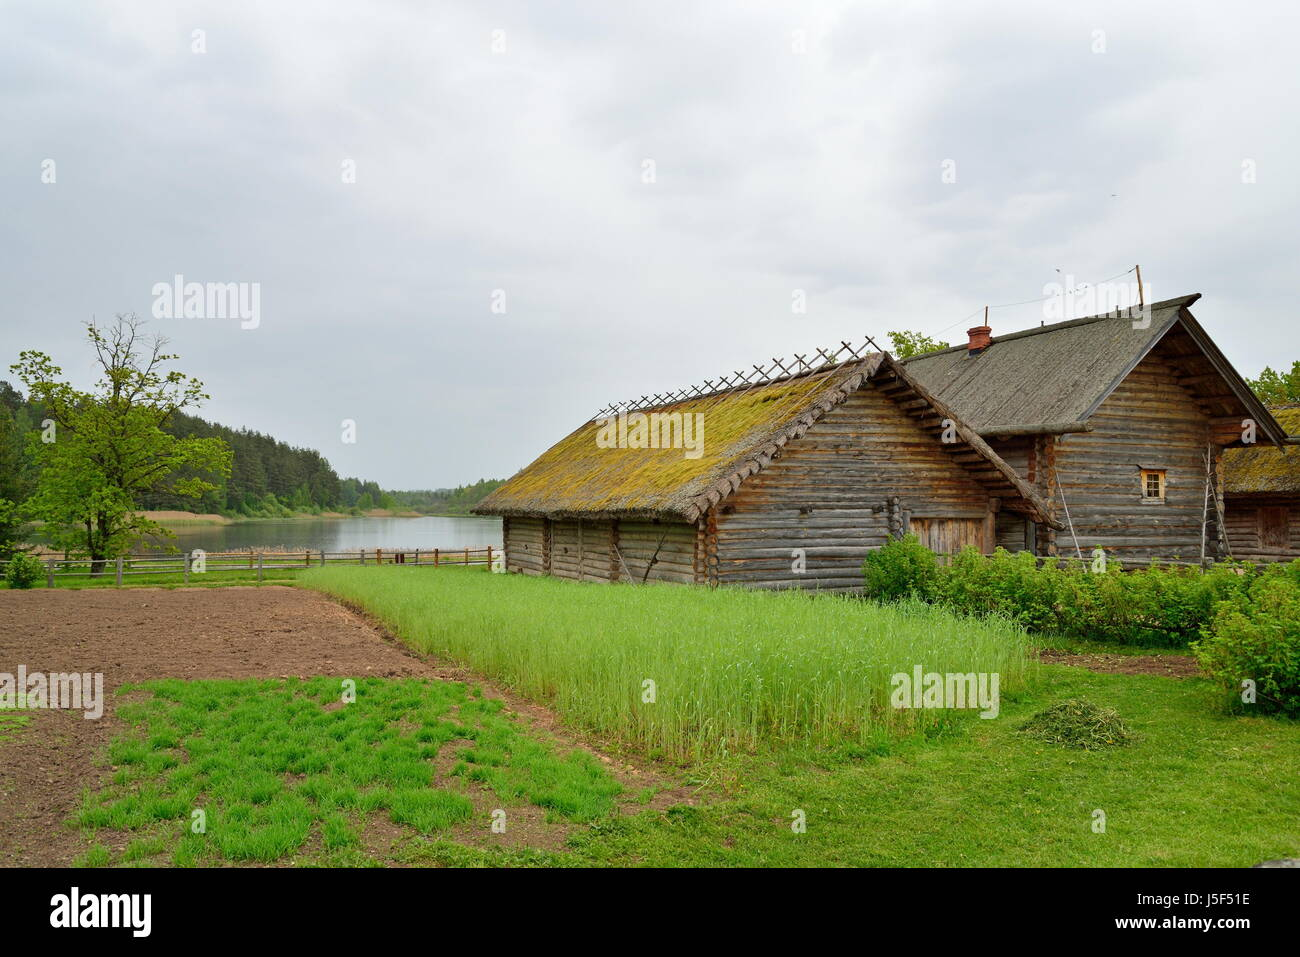 The garden and the old Russian log hut in Pushkin Mikhailovskoe summer cloudy day - Stock Image